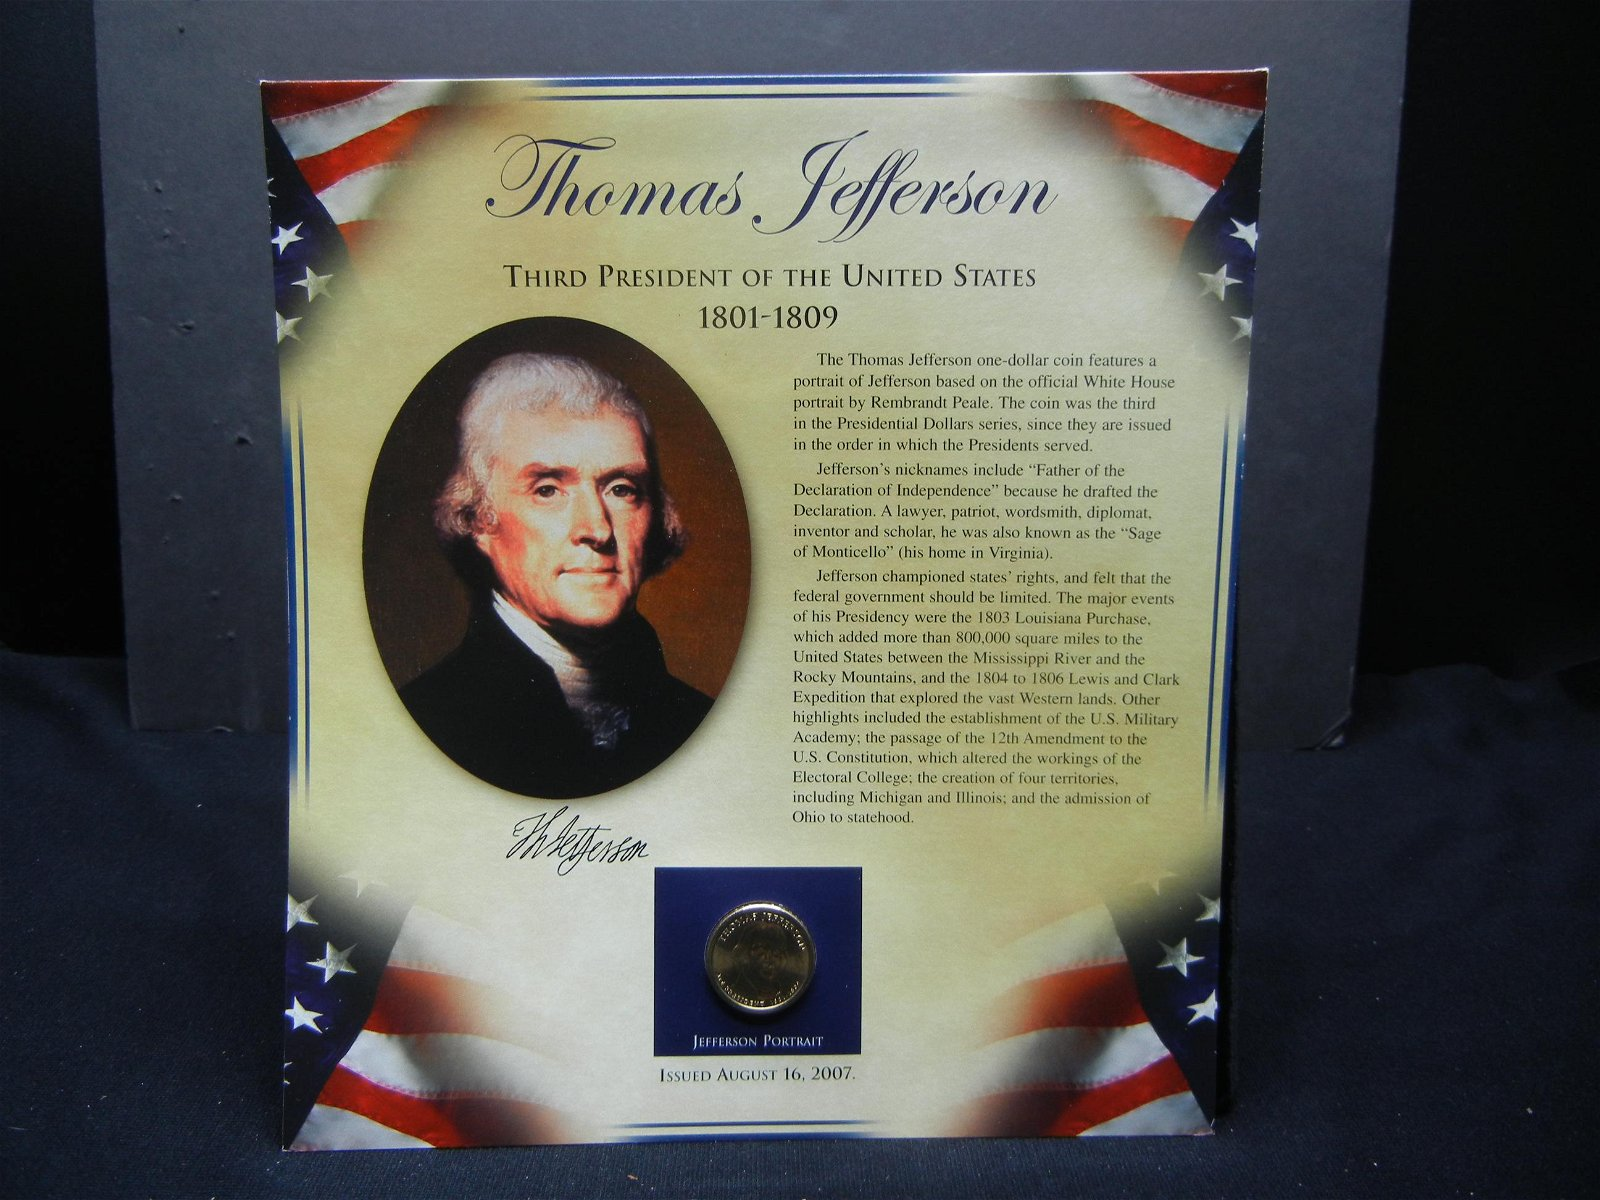 Thomas Jefferson Historical Presentation Coin and Stamp